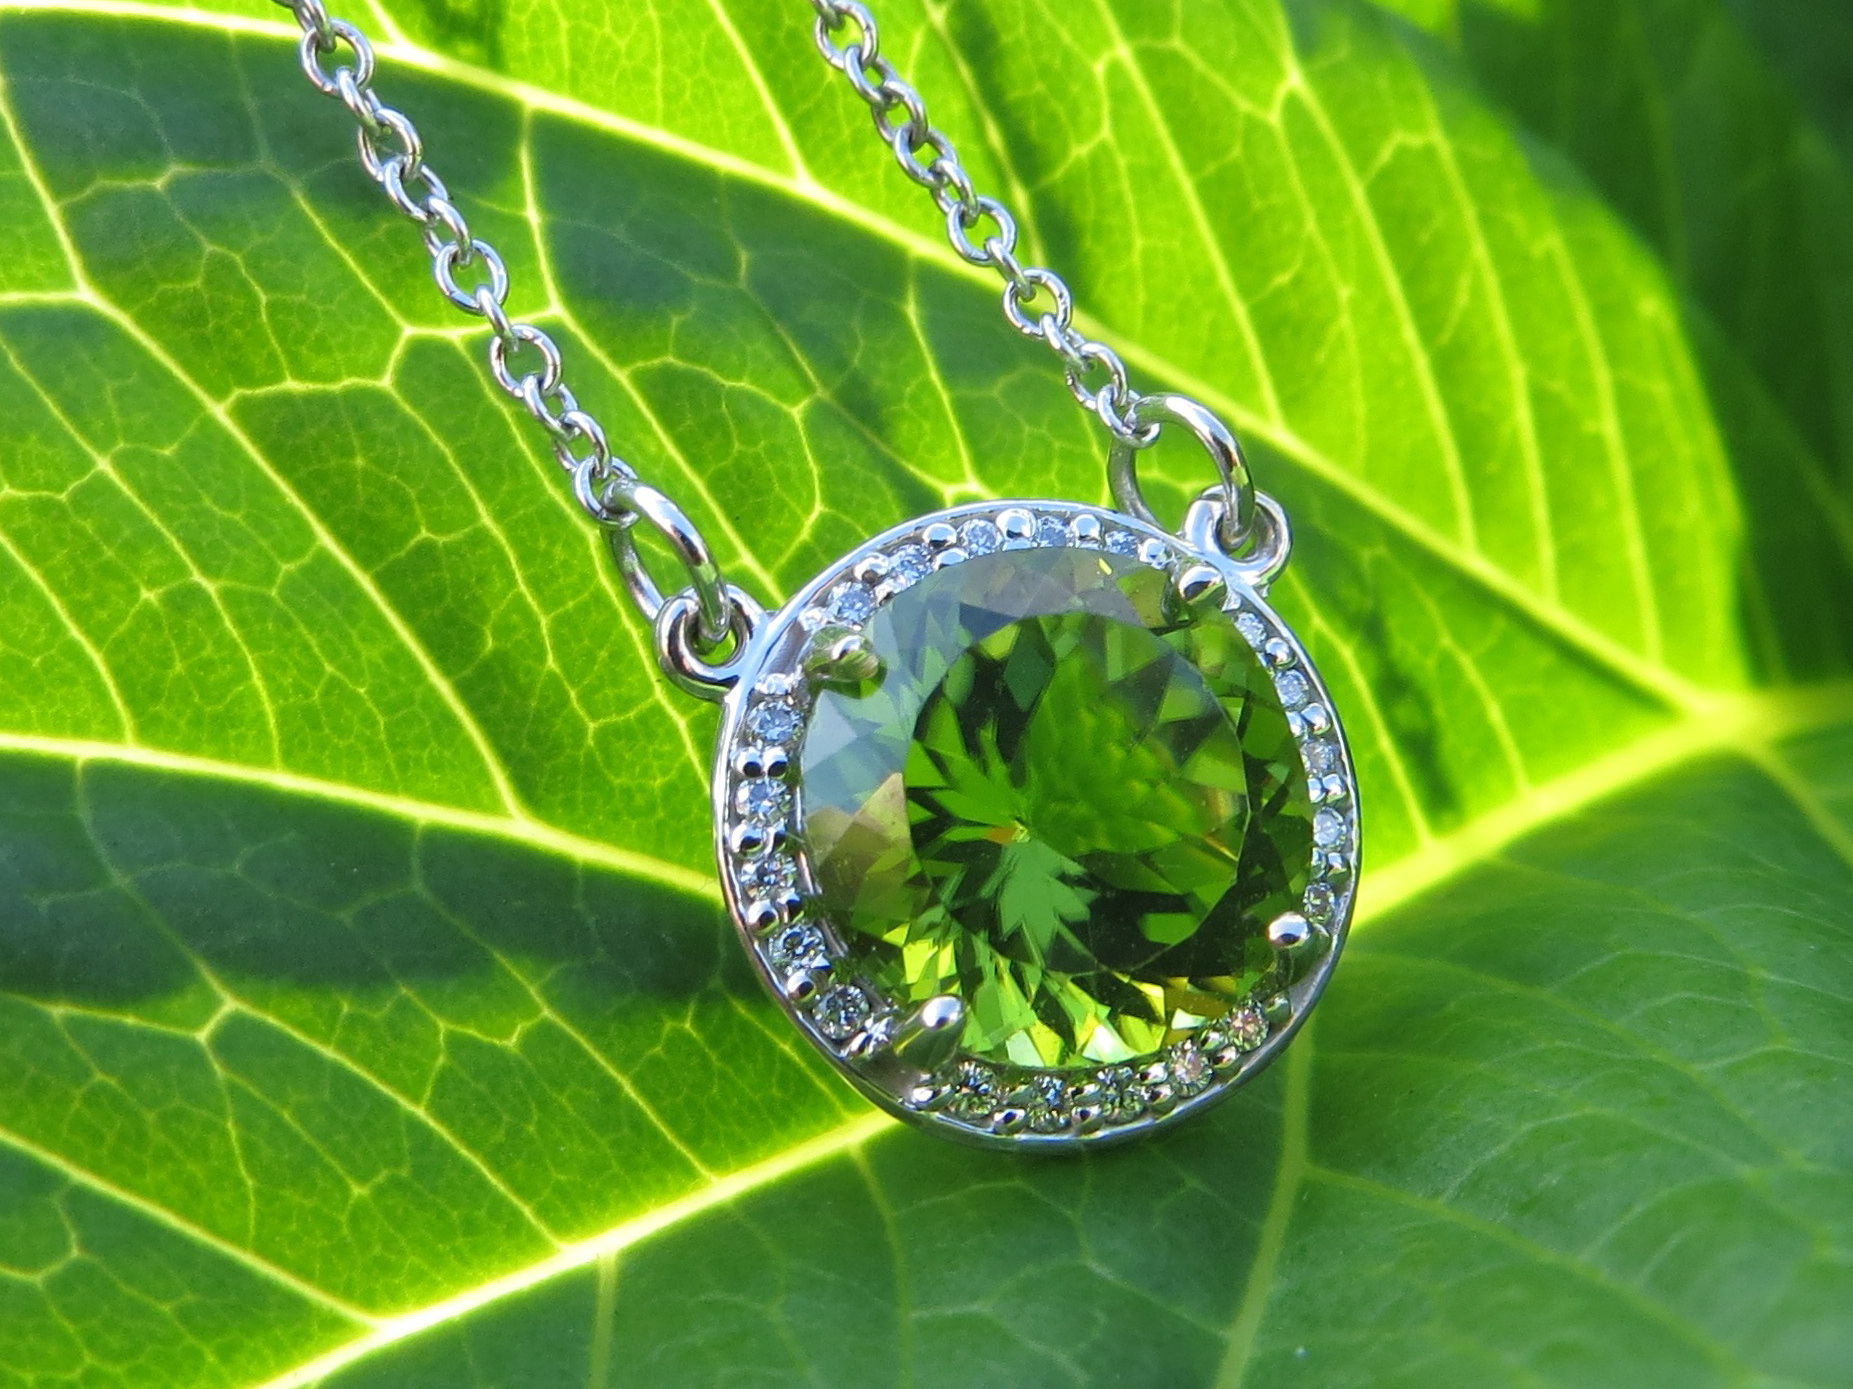 Peridot, Peridots, Necklace, Necklaces, Diamond, Diamonds, Diamond Halo, Diamond Halos, Gold, White Gold, 14Kt Gold, 14Kt White Gold, Providence, Jewelry Store, Jewelry, Jeweler, Fine Jewelry, Custom, Custom-Made, Handmade, Platinum, Engagement, Wedding, Hegeman & Co.